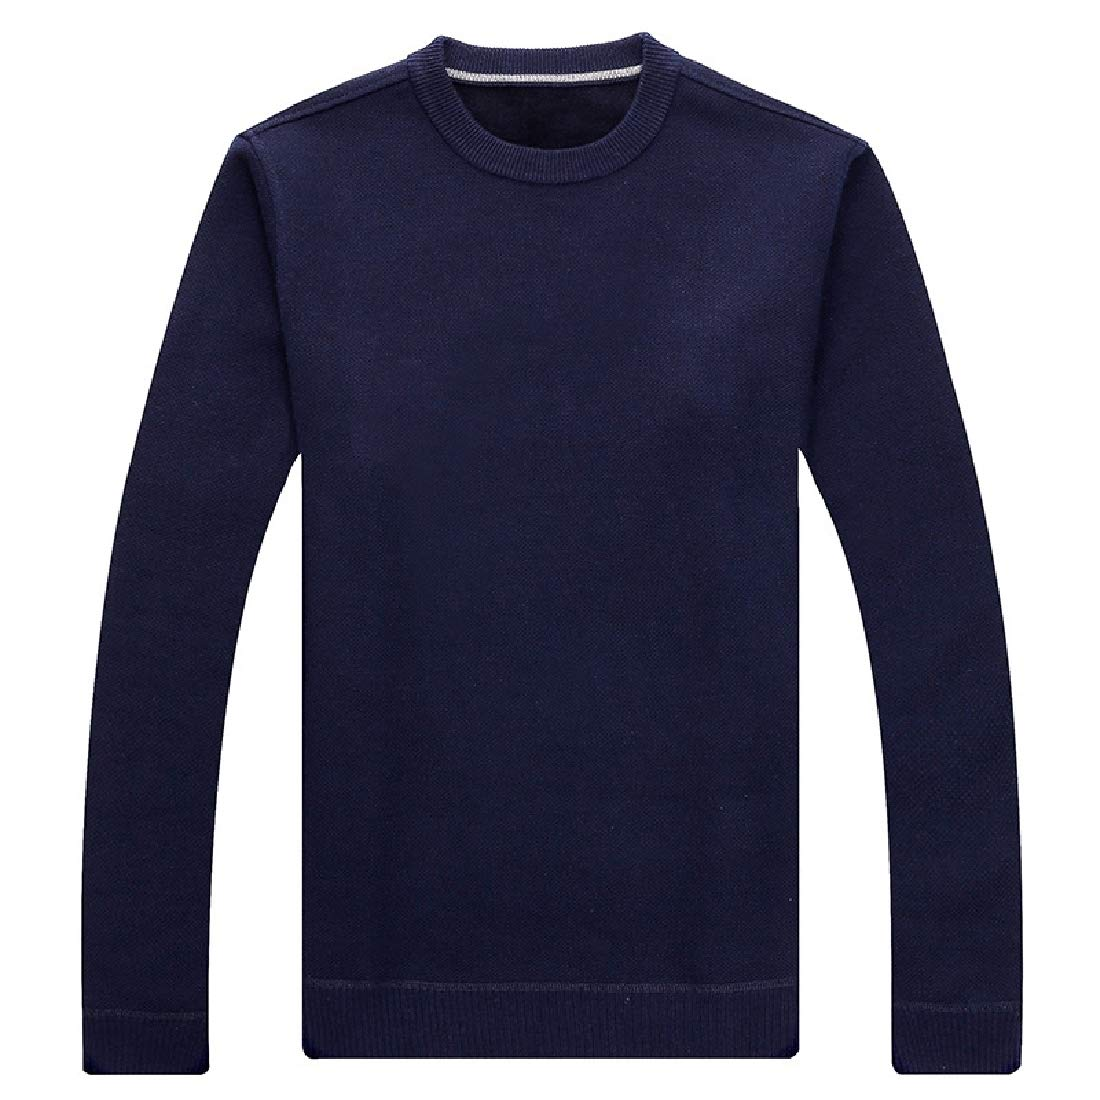 Yayu Mens Fashion Crewneck Casual Knitted Sweater Solid Pullover Sweaters